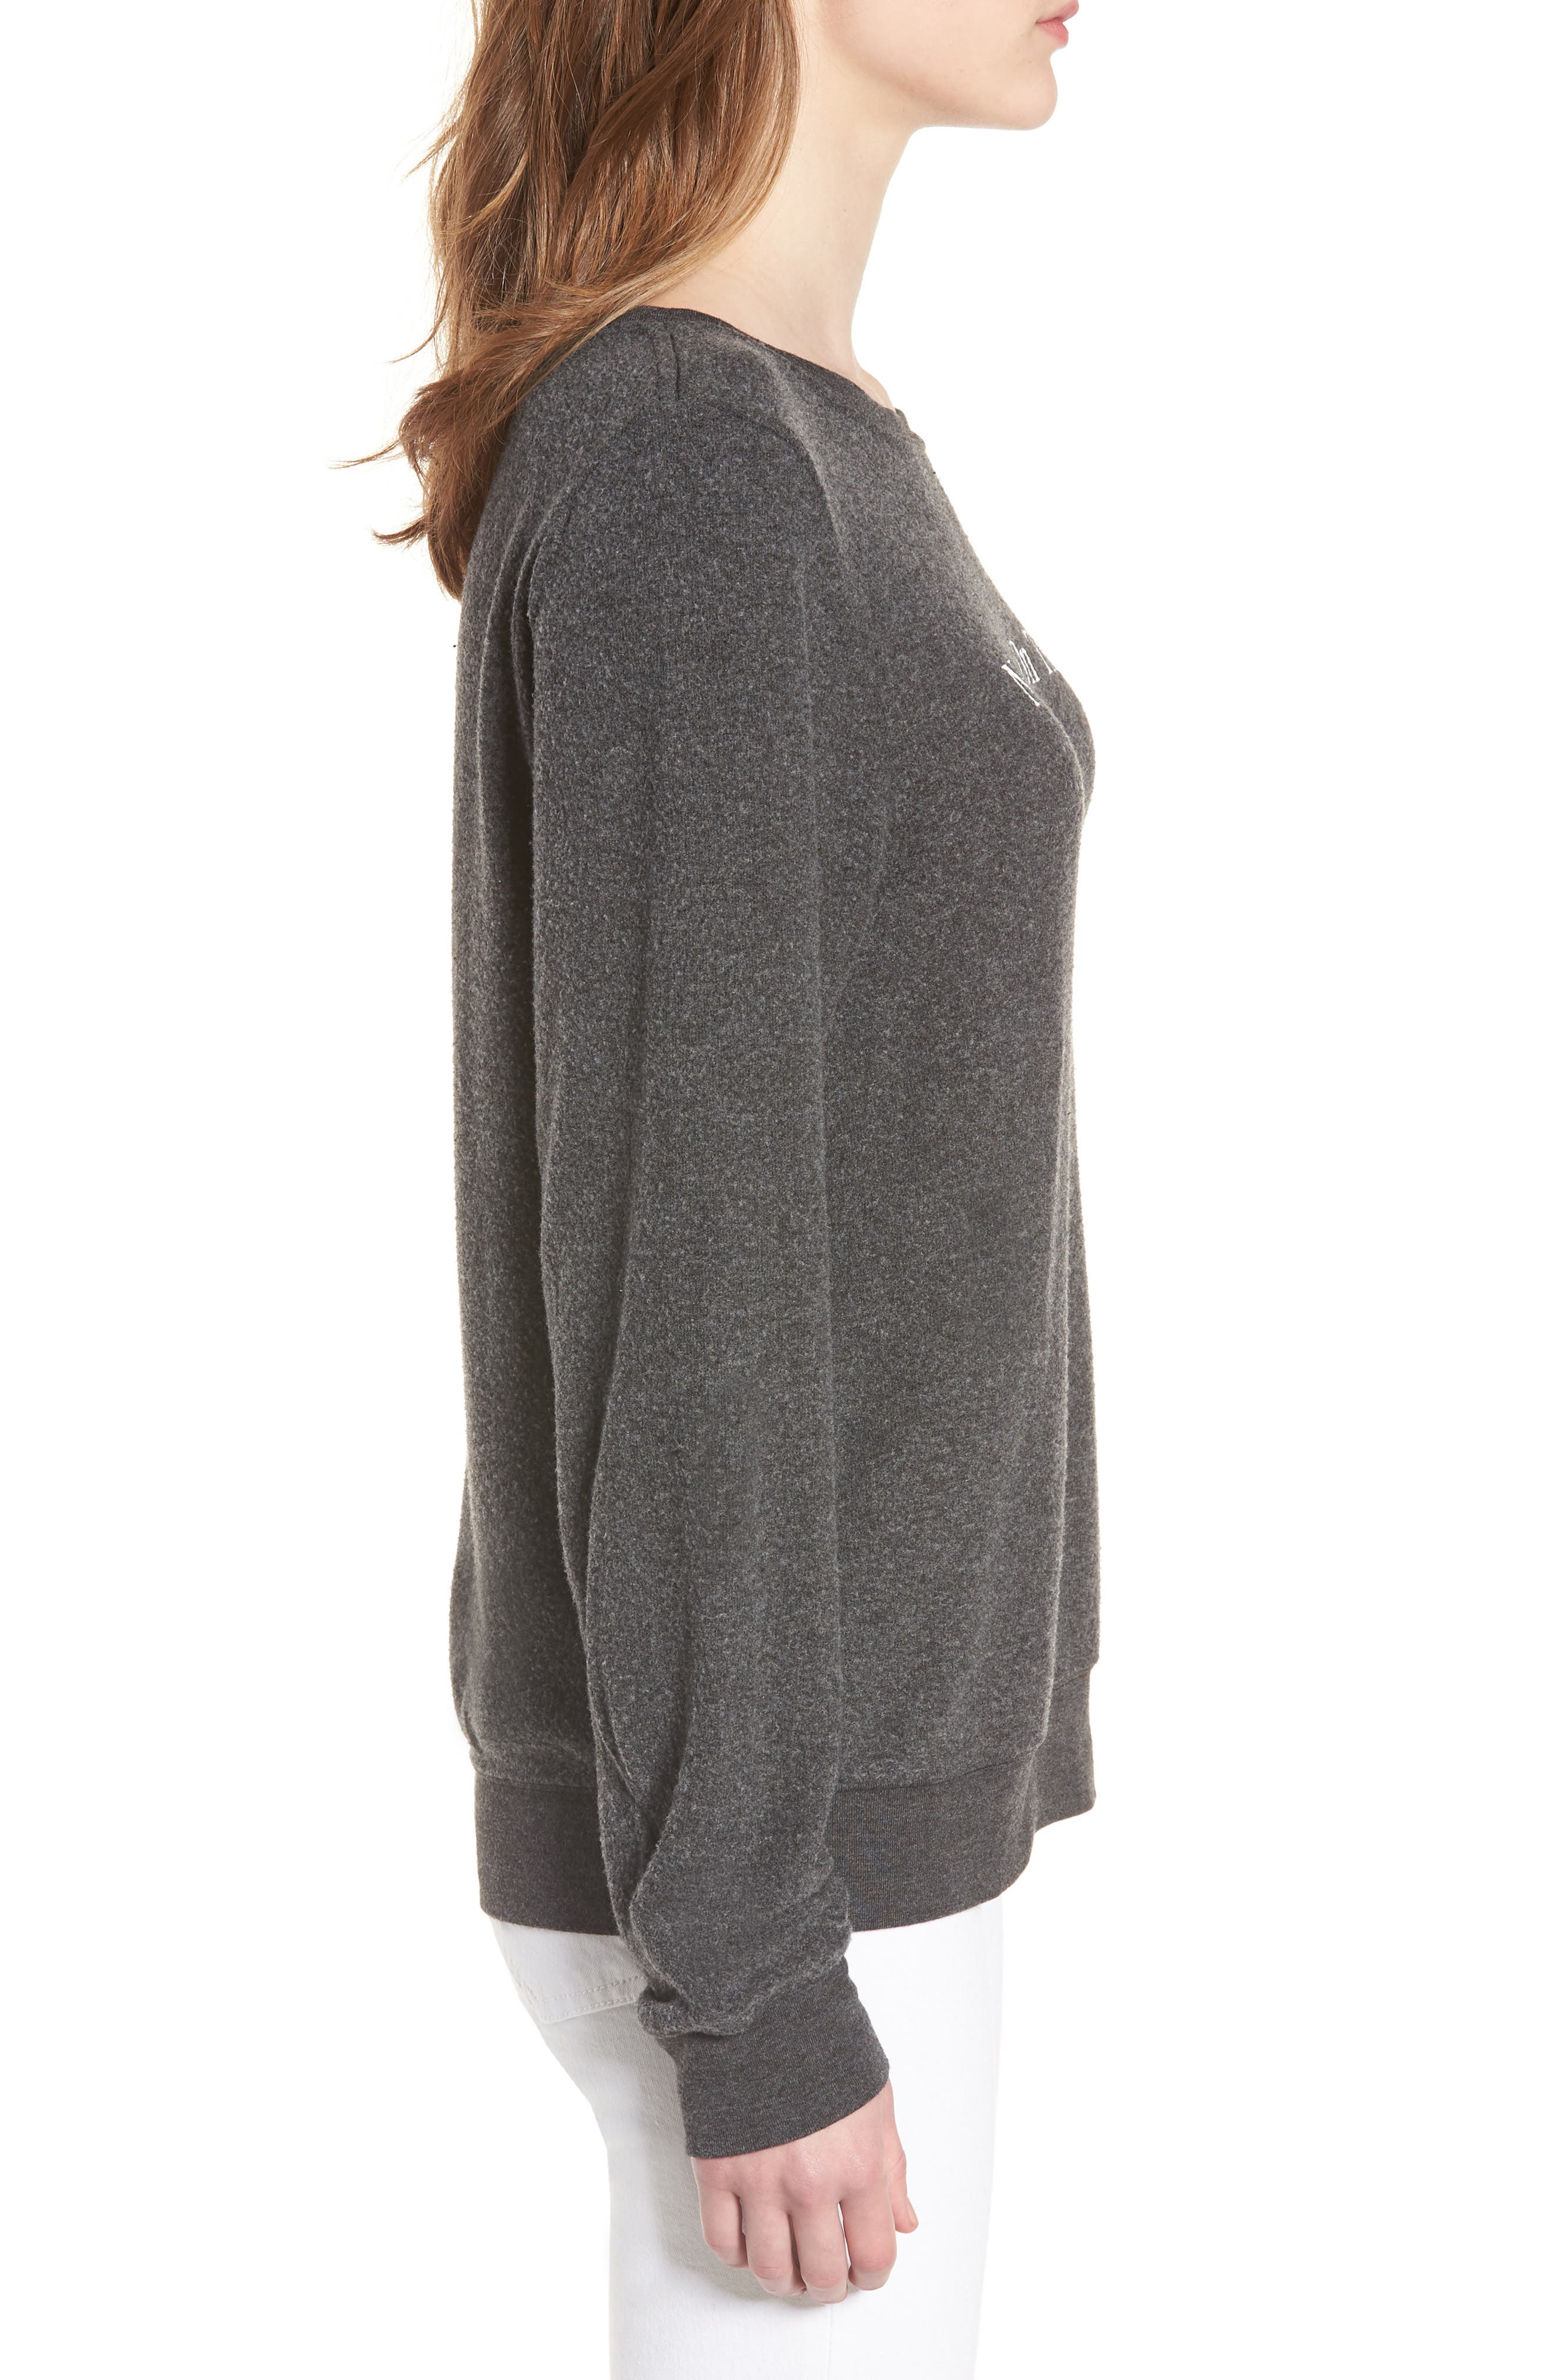 Never on Time Baggy Beach Jumper Pullover,                             Alternate thumbnail 3, color,                             Black